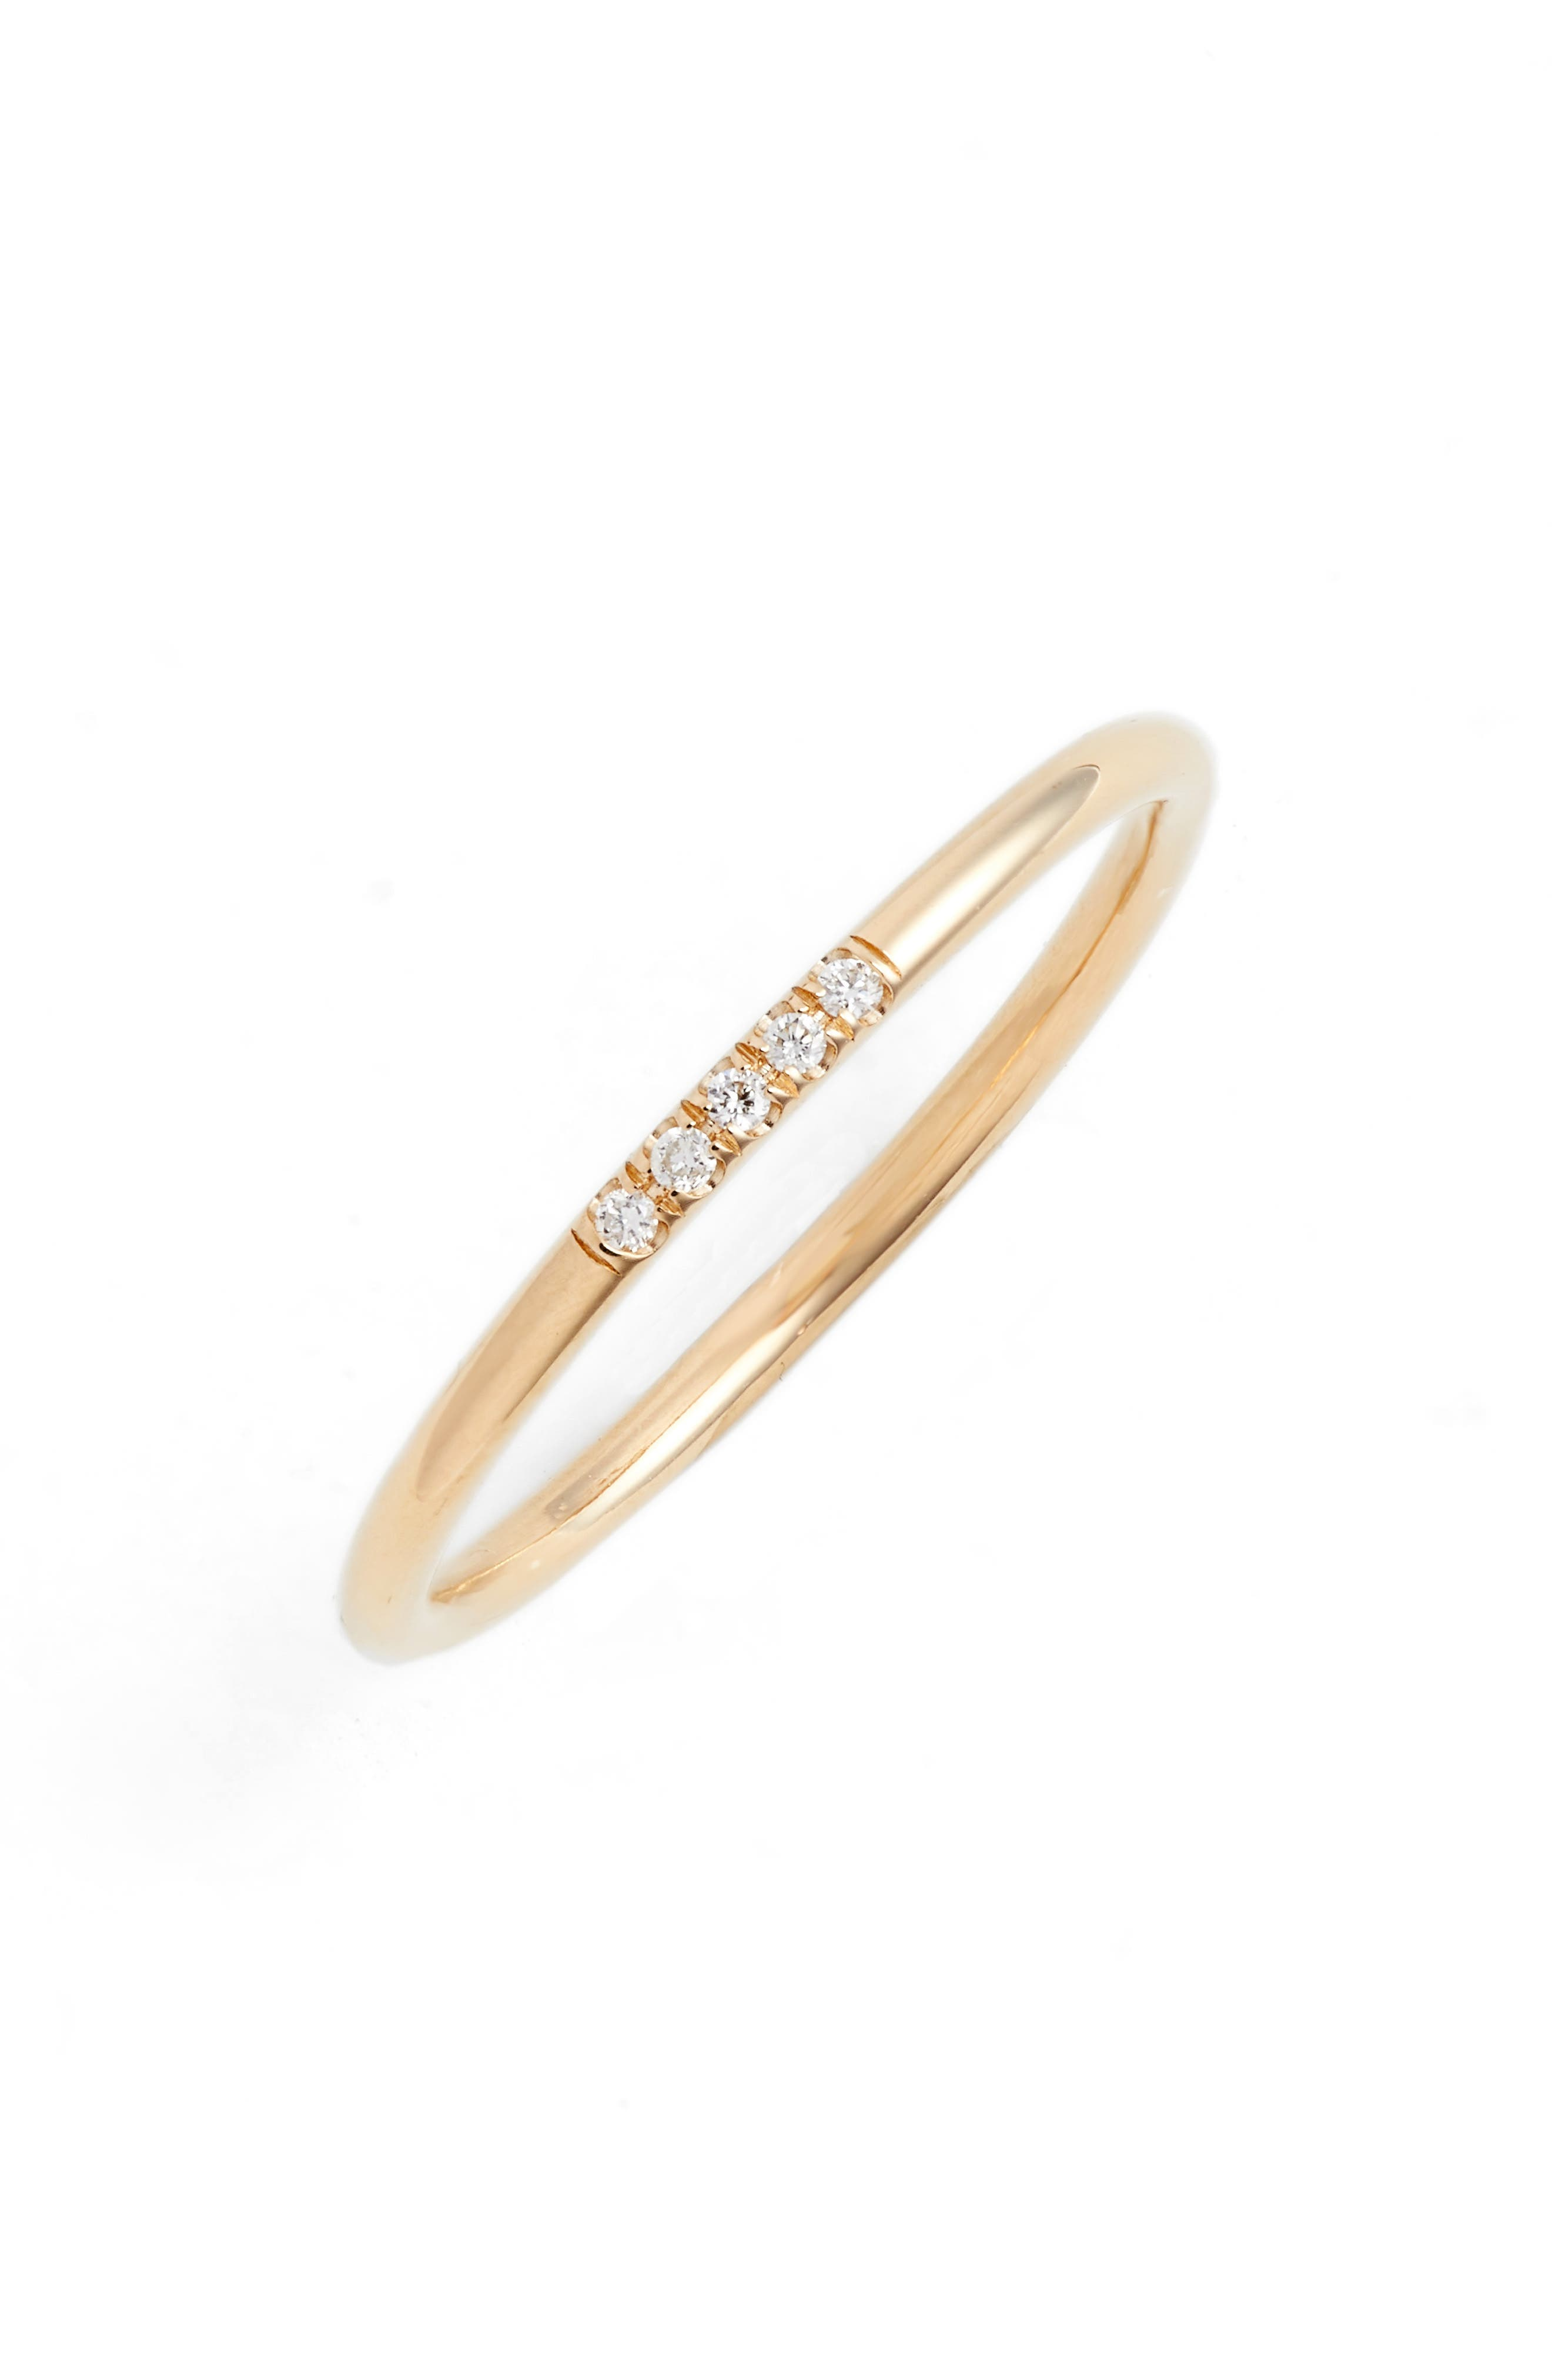 French Pavé Diamond Stacking Ring,                         Main,                         color, YELLOW GOLD